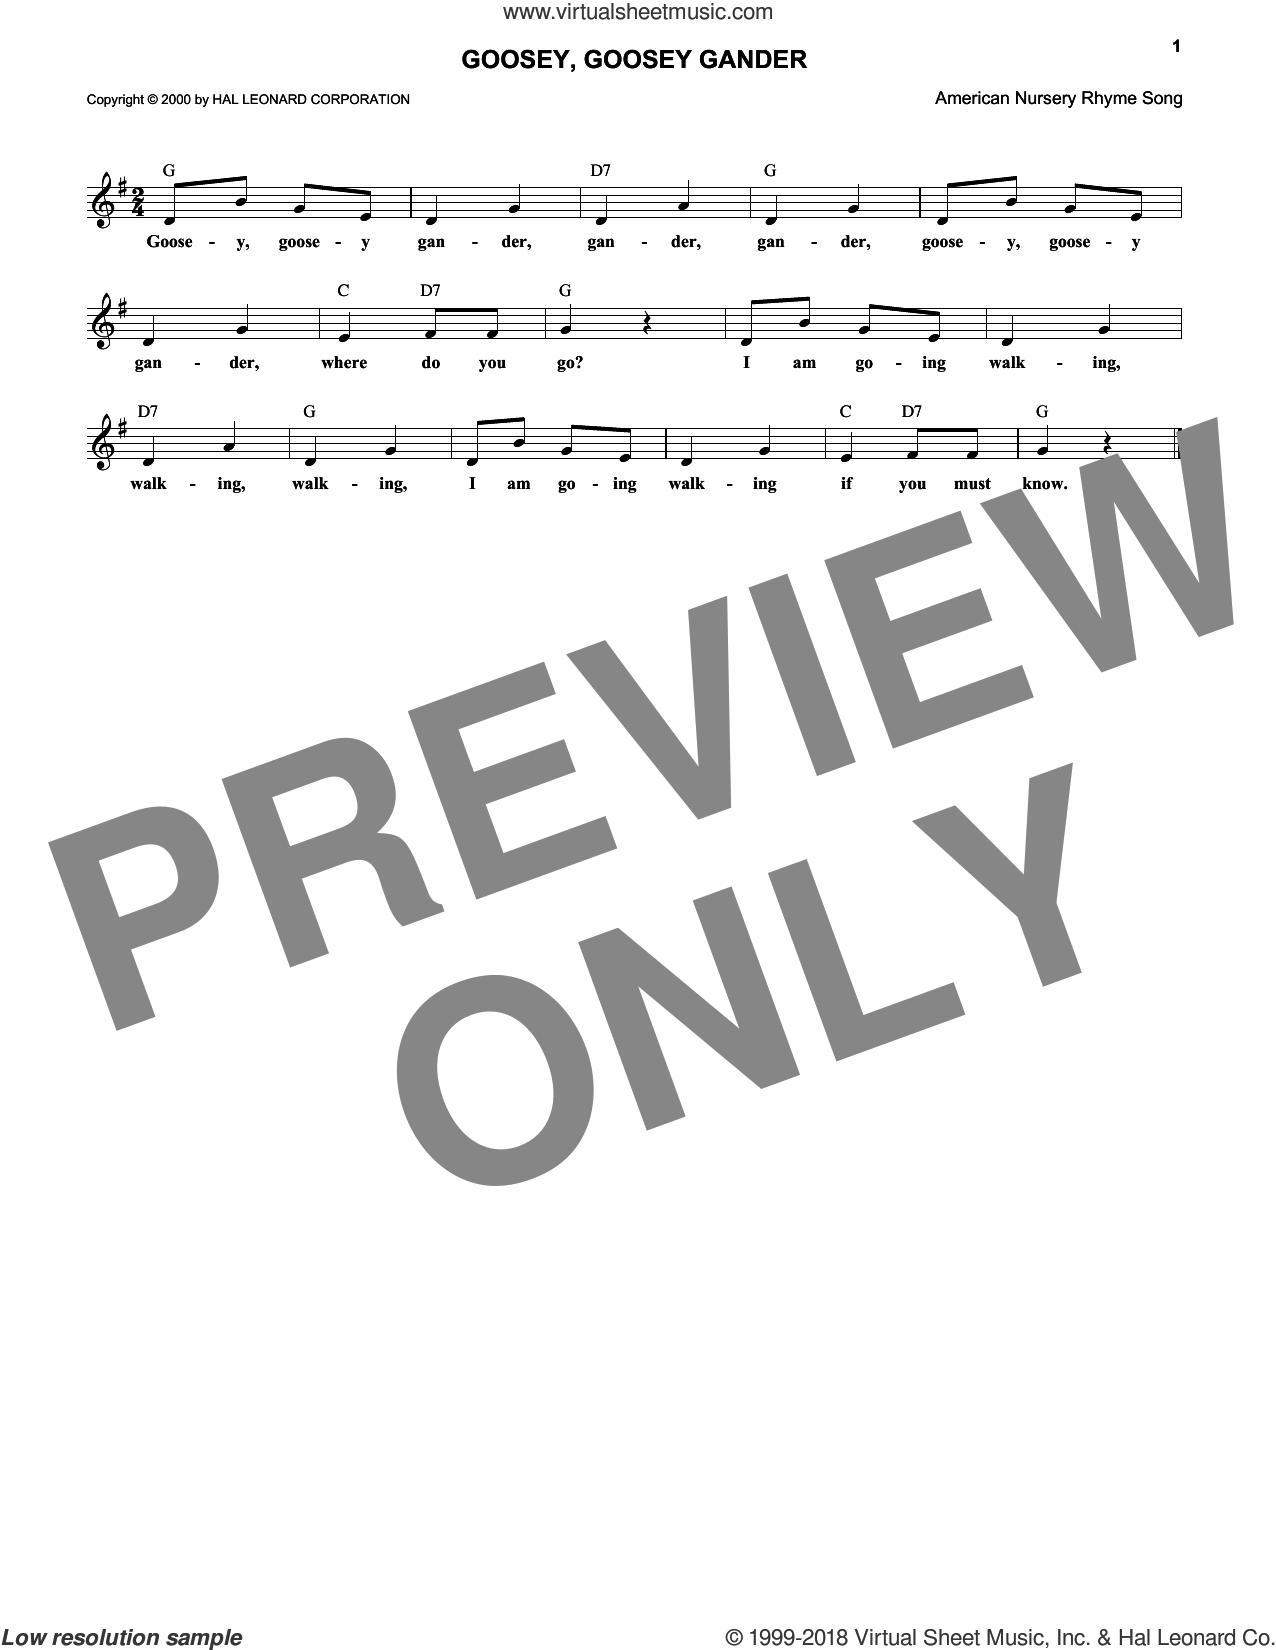 Goosey, Goosey Gander sheet music for voice and other instruments (fake book), intermediate skill level